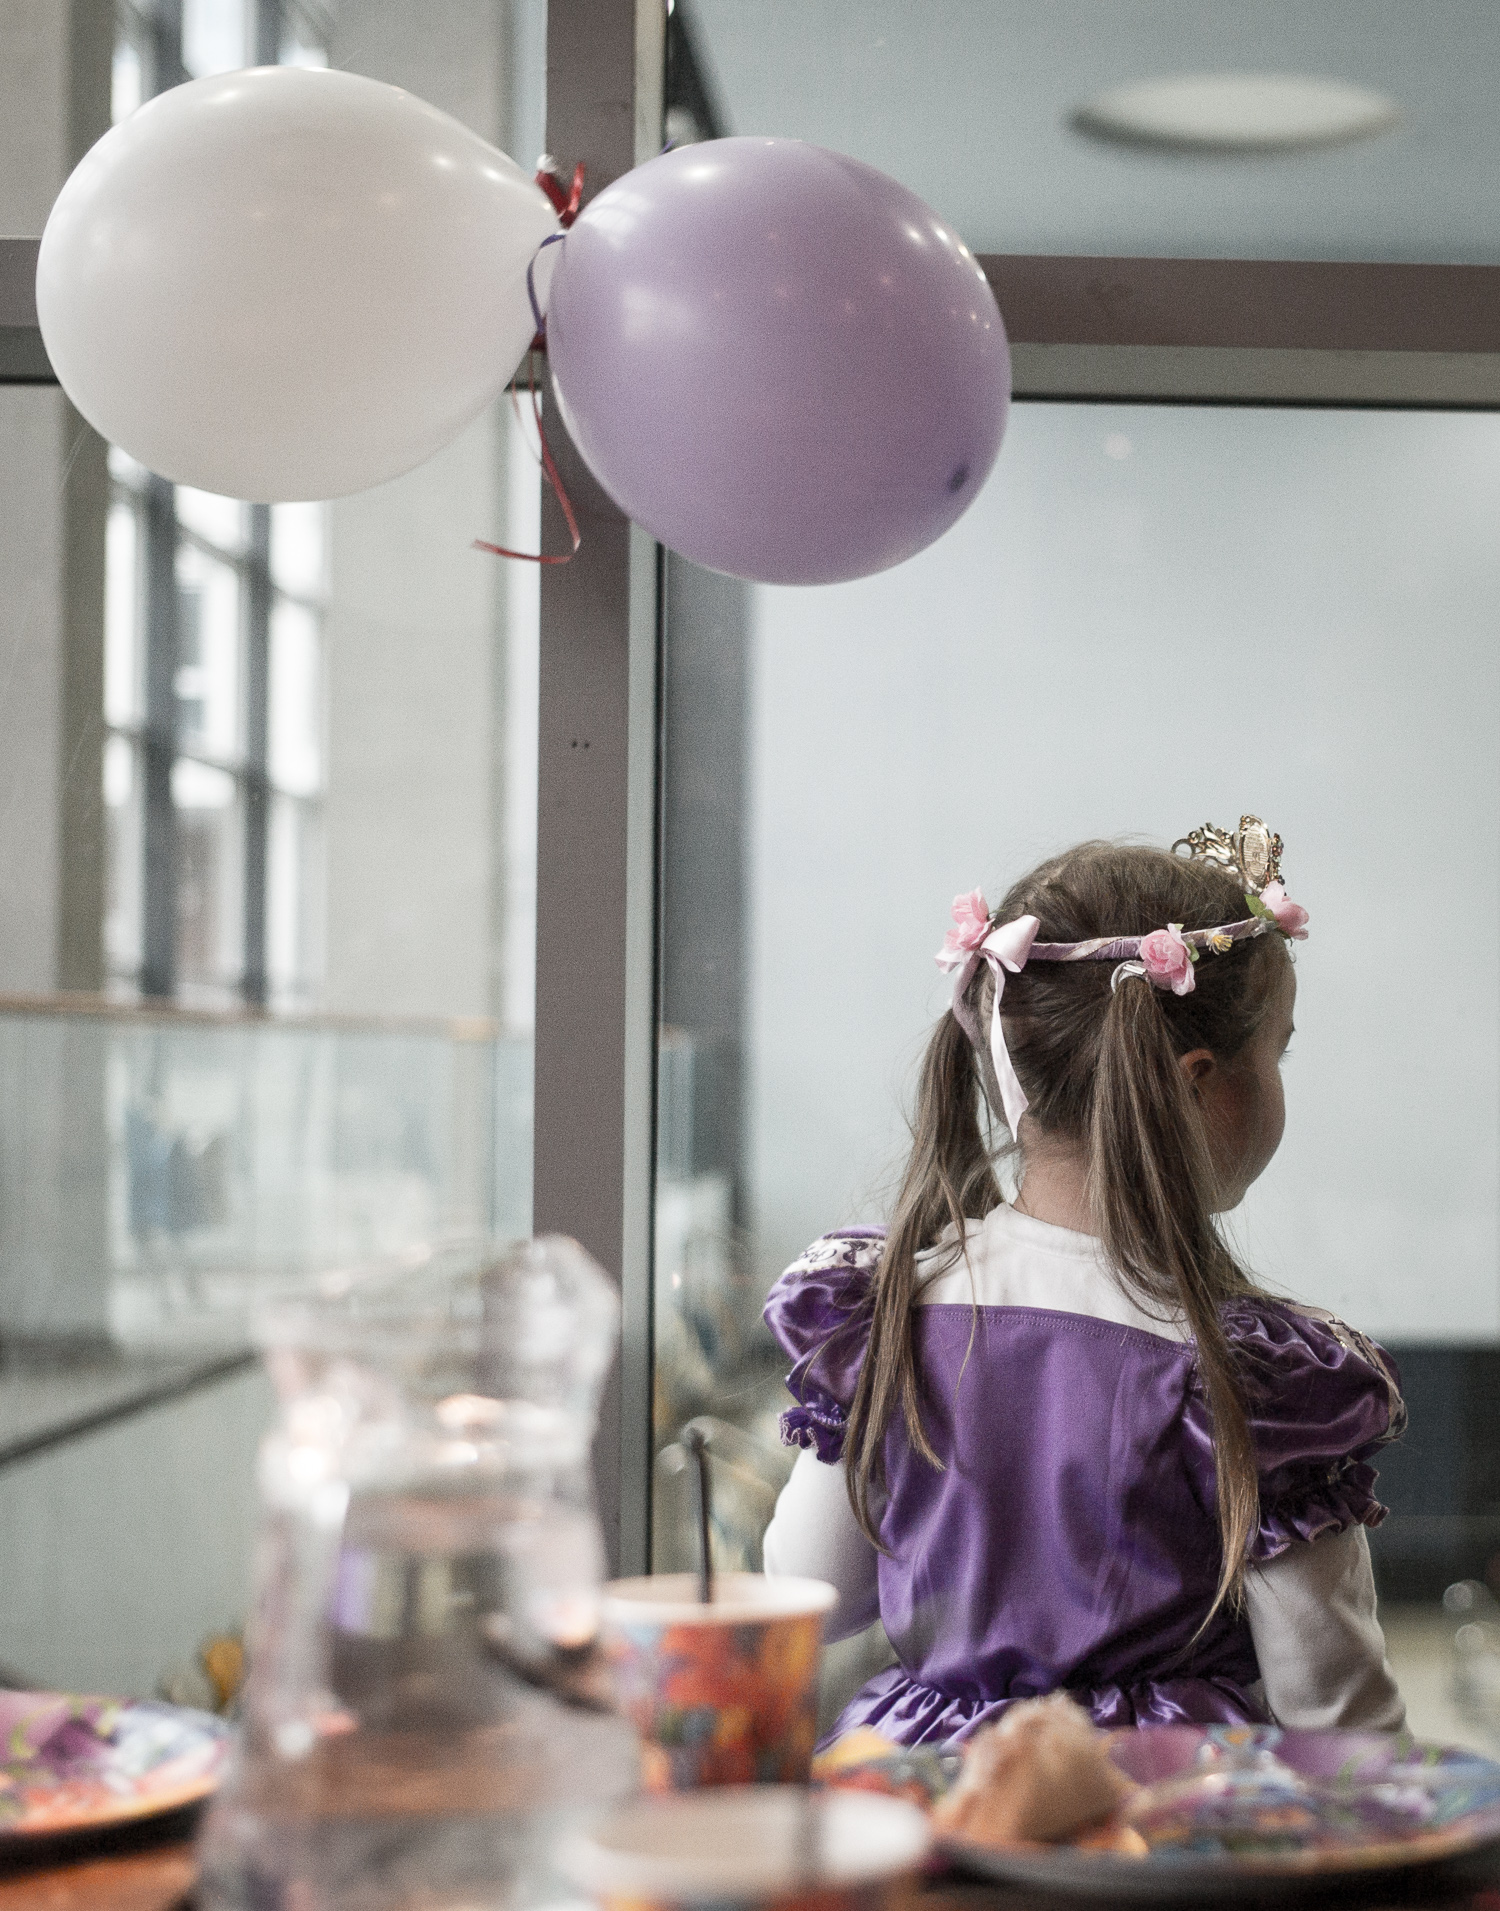 20150425 - Emilie s 4th Birthday (1500) -19.jpg